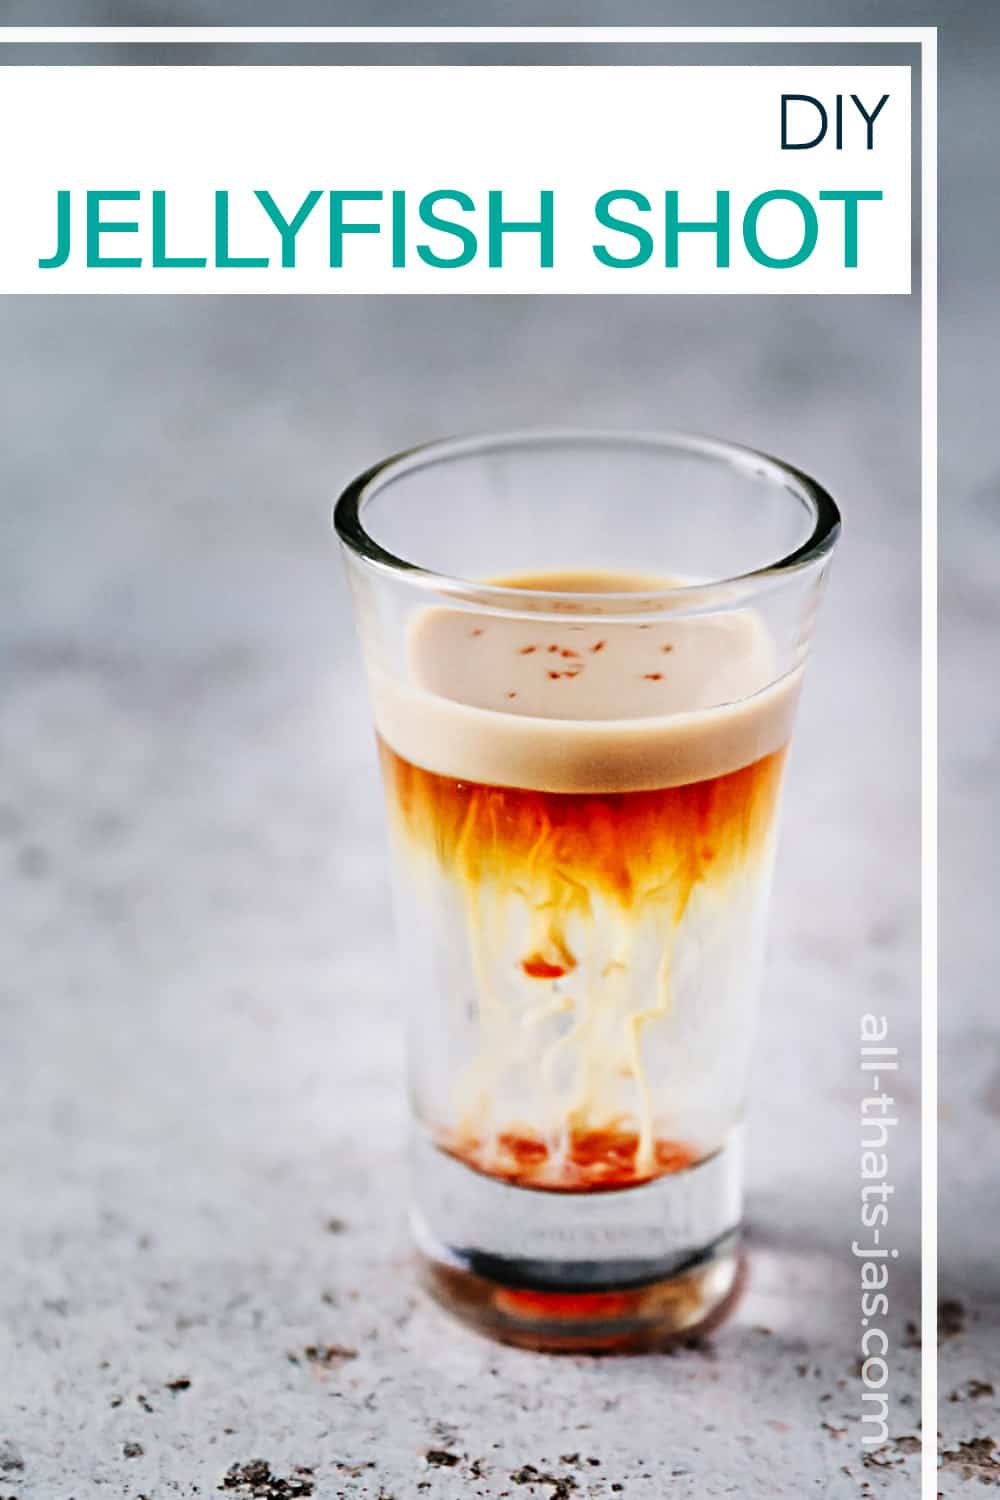 A small shot glass with jellyfish drink and with text